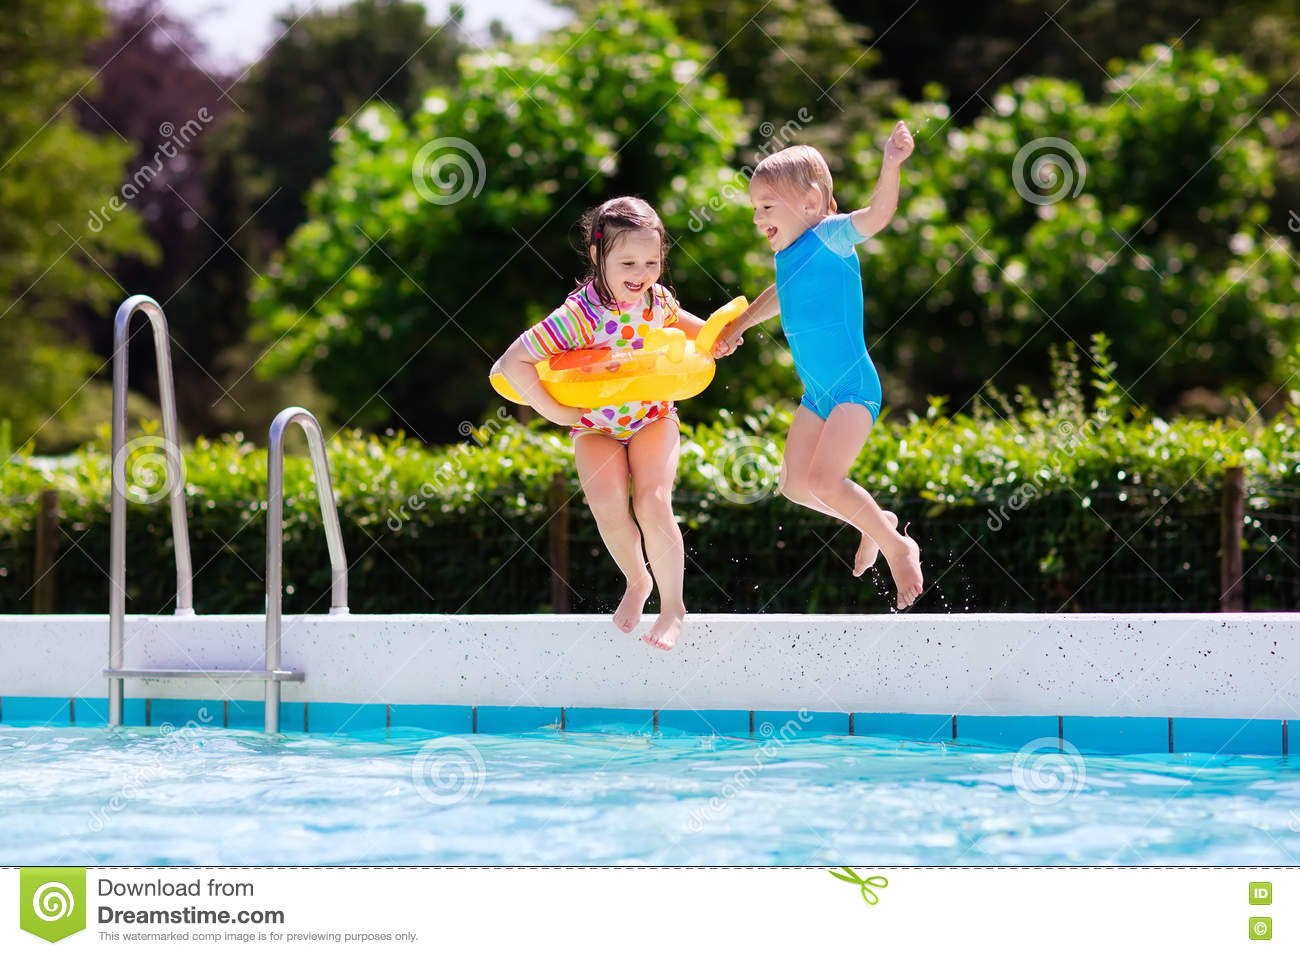 Kids Jumping Into Swimming Pool Stock Photo Image 74930148